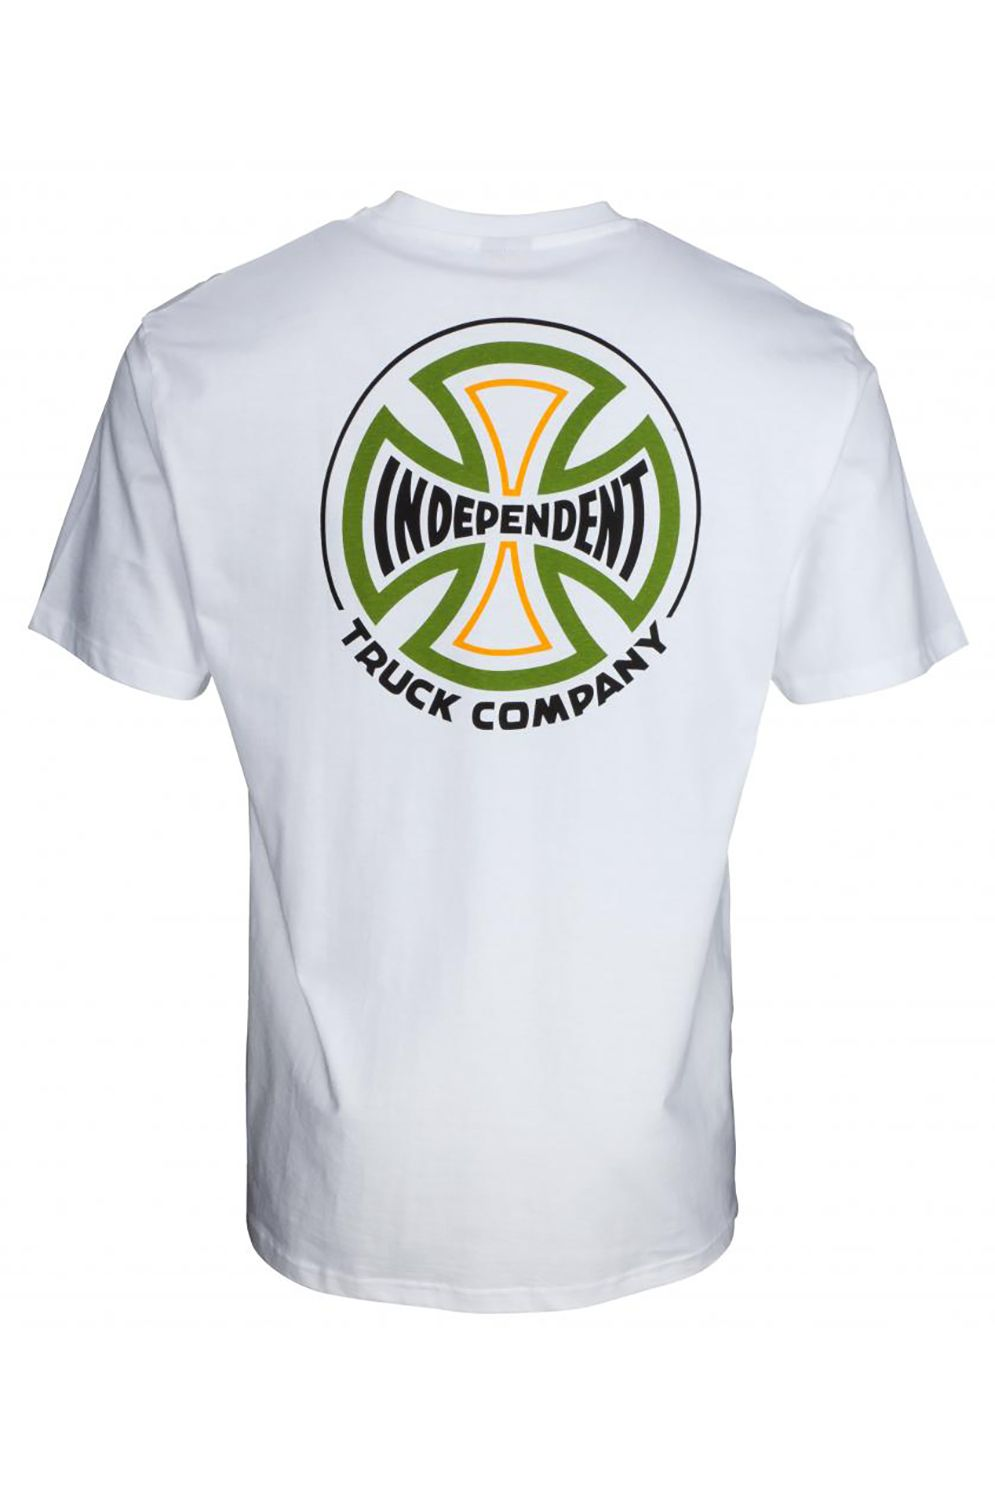 T-Shirt Independent CONVERGE T-SHIRT White